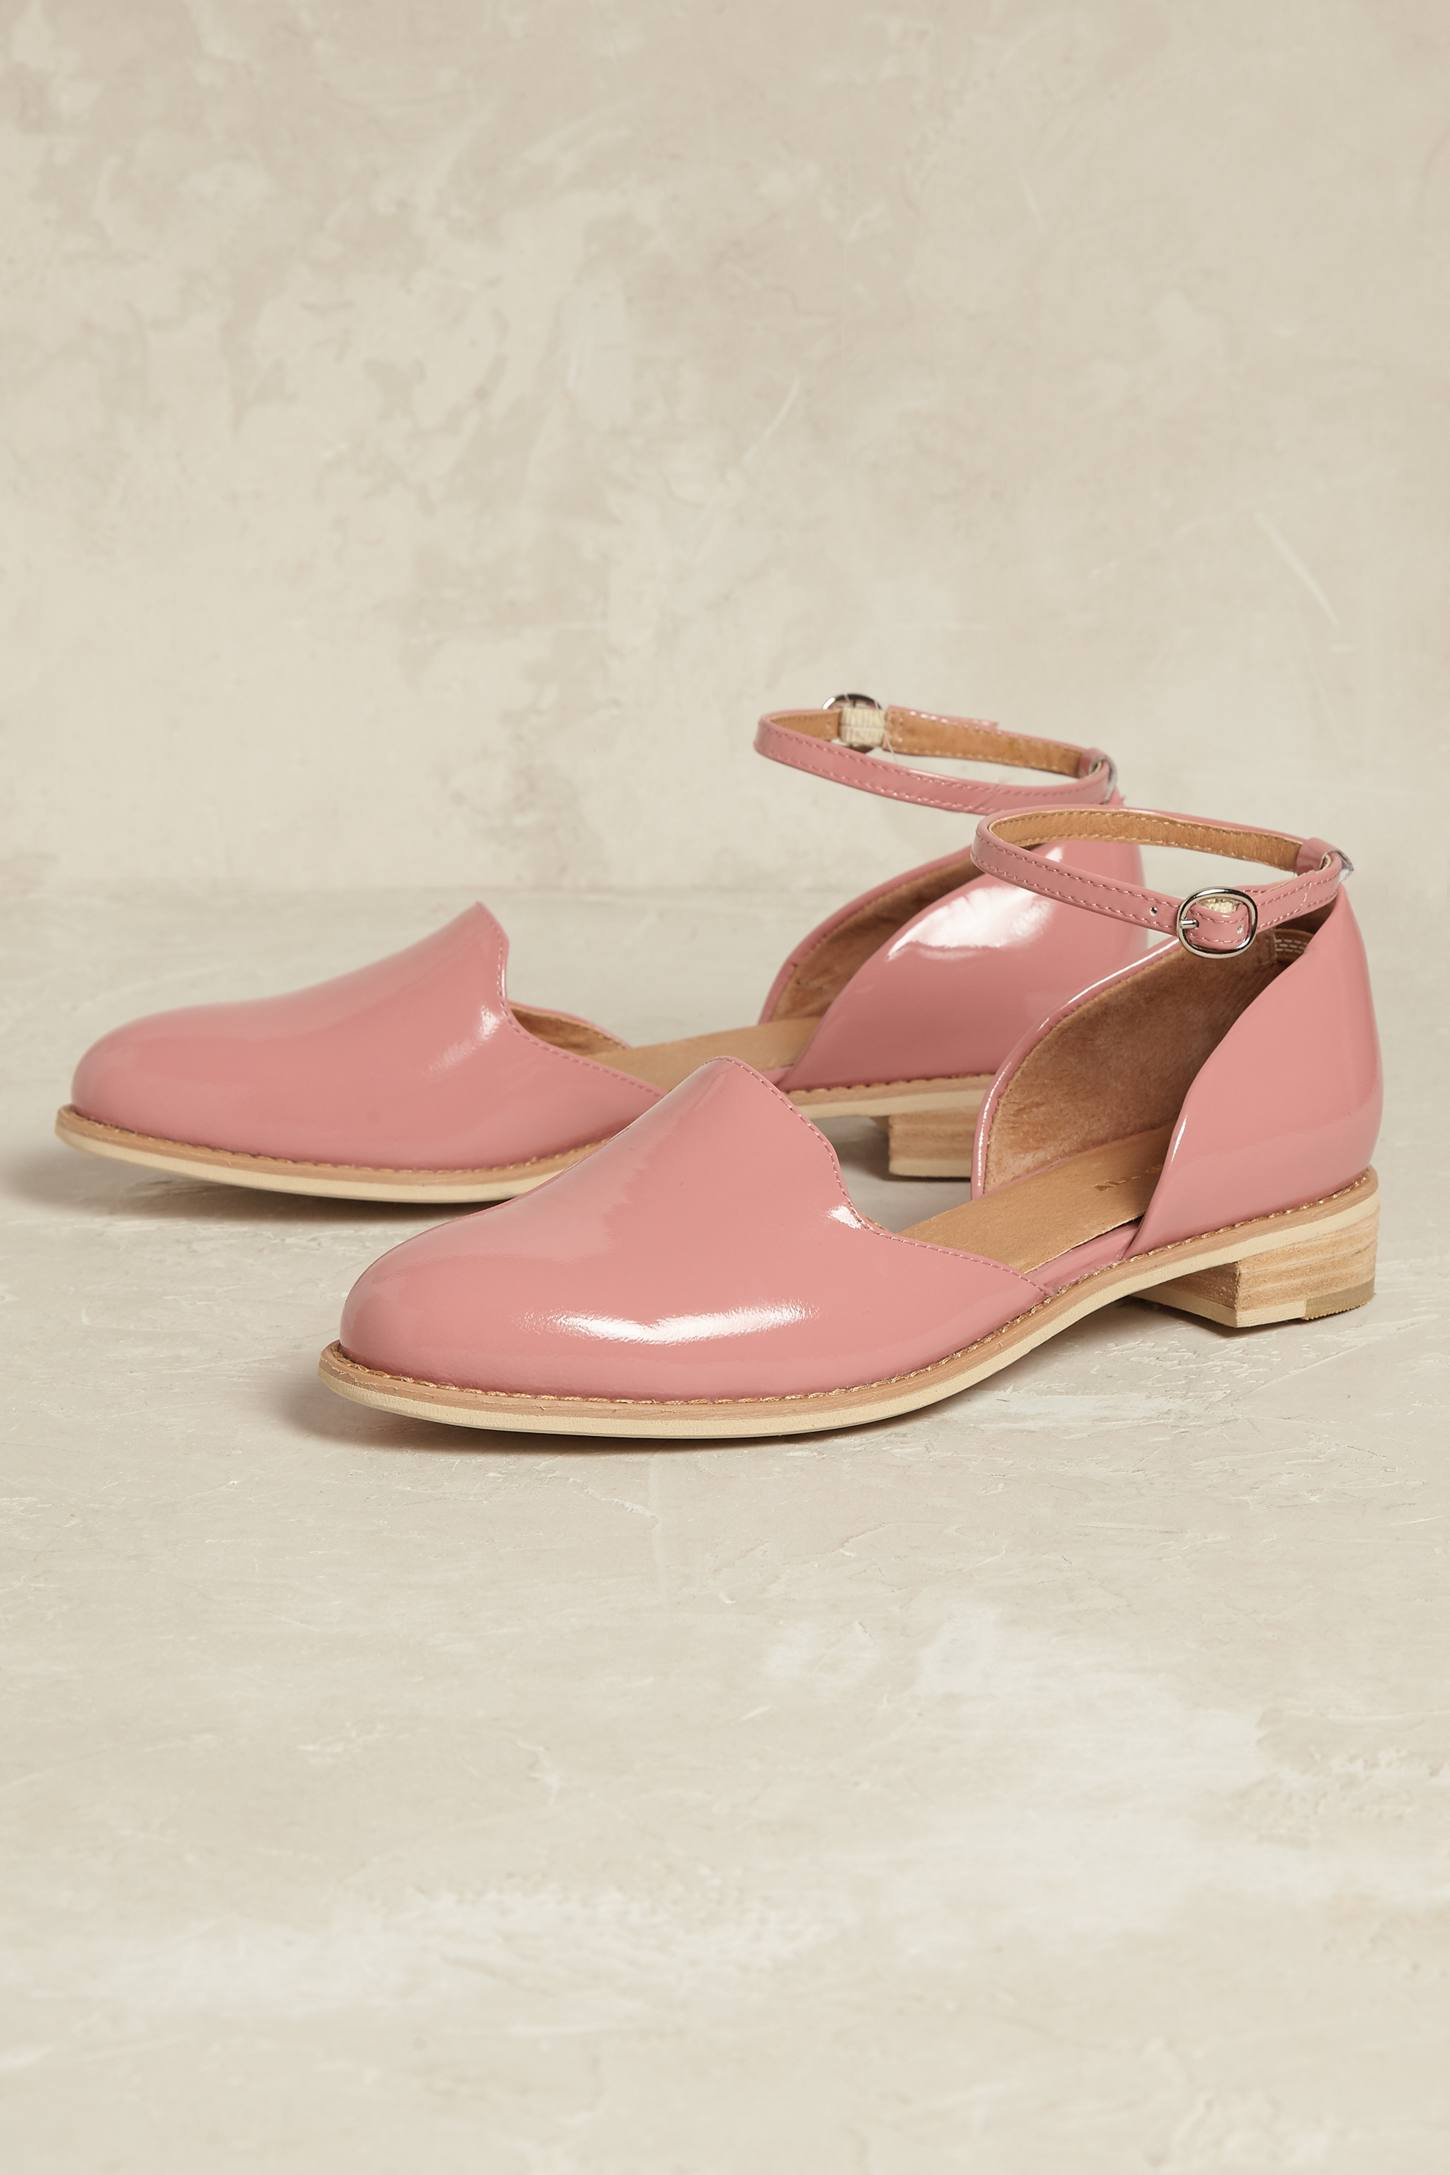 Slide View: 1: Madelyn Ankle-Strap Flats